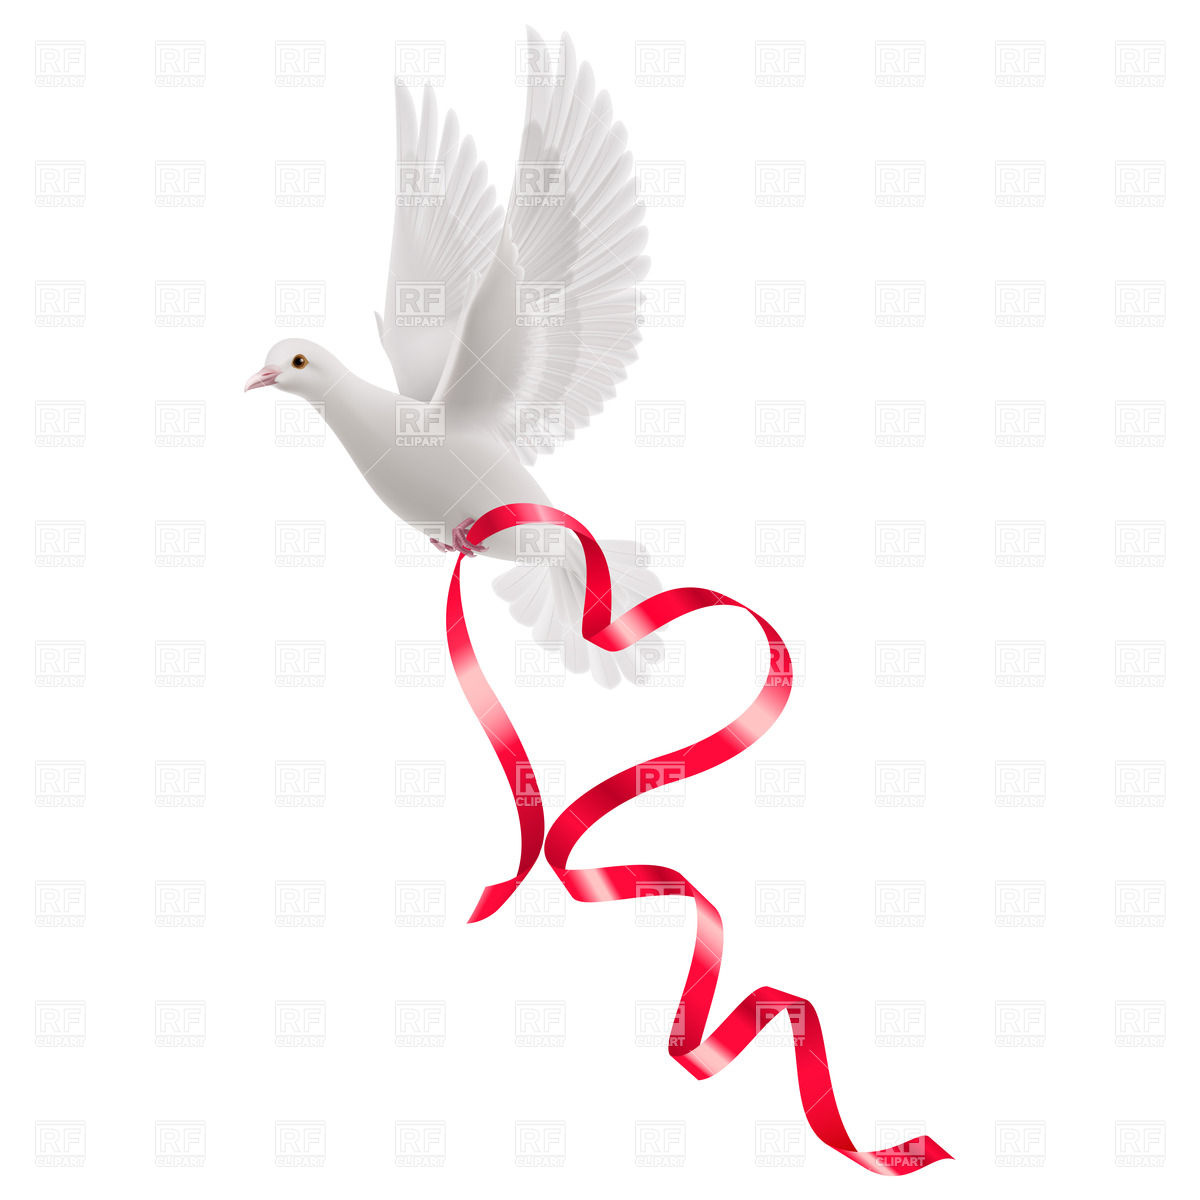 1200x1200 White Pigeon With Red Ribbon As A Heart Vector Image Vector